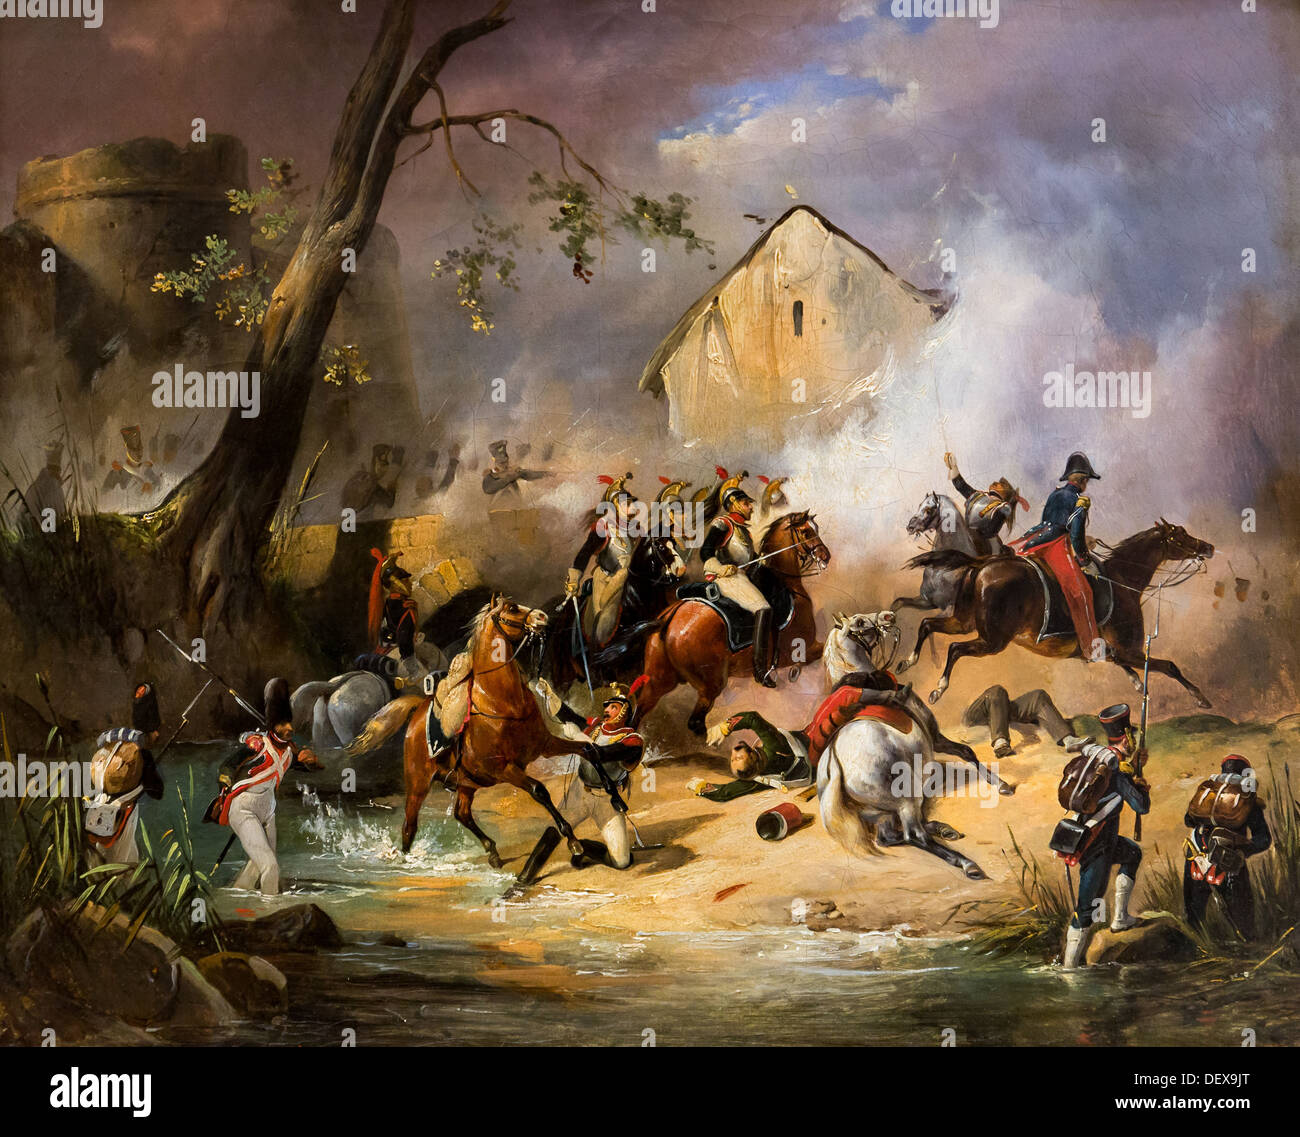 19th century  -  Battle, around 1840 - Horace Vernet Philippe Sauvan-Magnet / Active Museum Oil on canvas - Stock Image